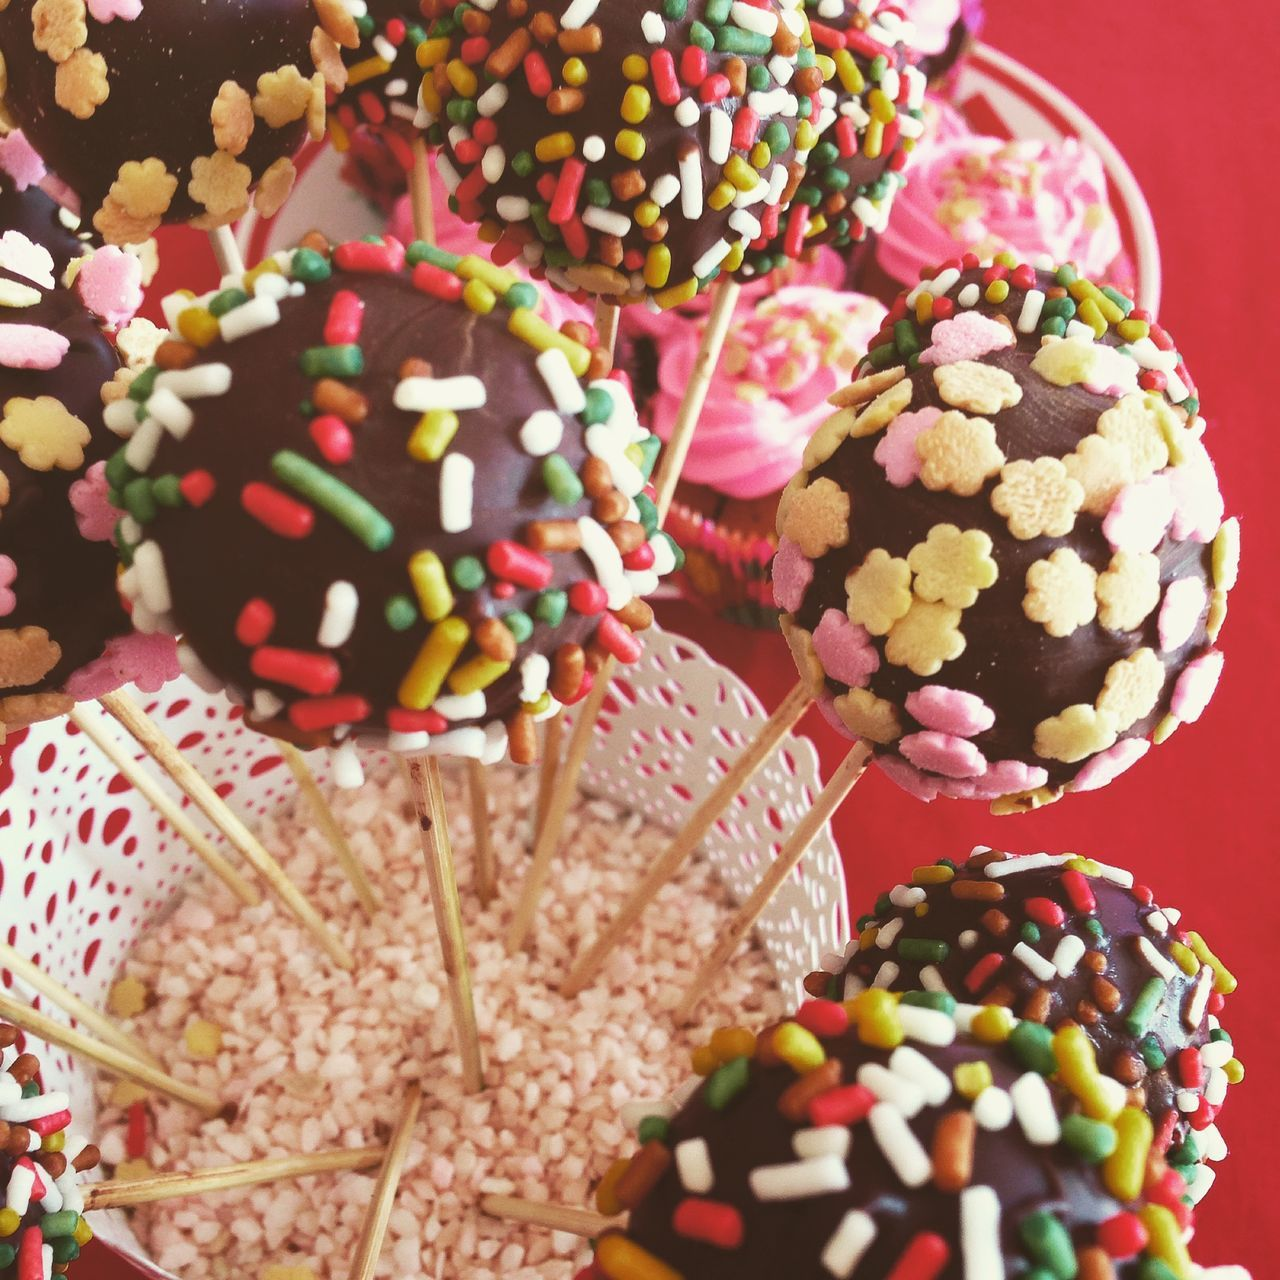 Chocolate cakepops with sprinkles top view Above Cakepop Cakepops Choice Close-up Dessert Food Food And Drink Indoors  Multi Colored Party Pop Popcake Sprinkles Stick Sweet Sweet Food Top View Variation